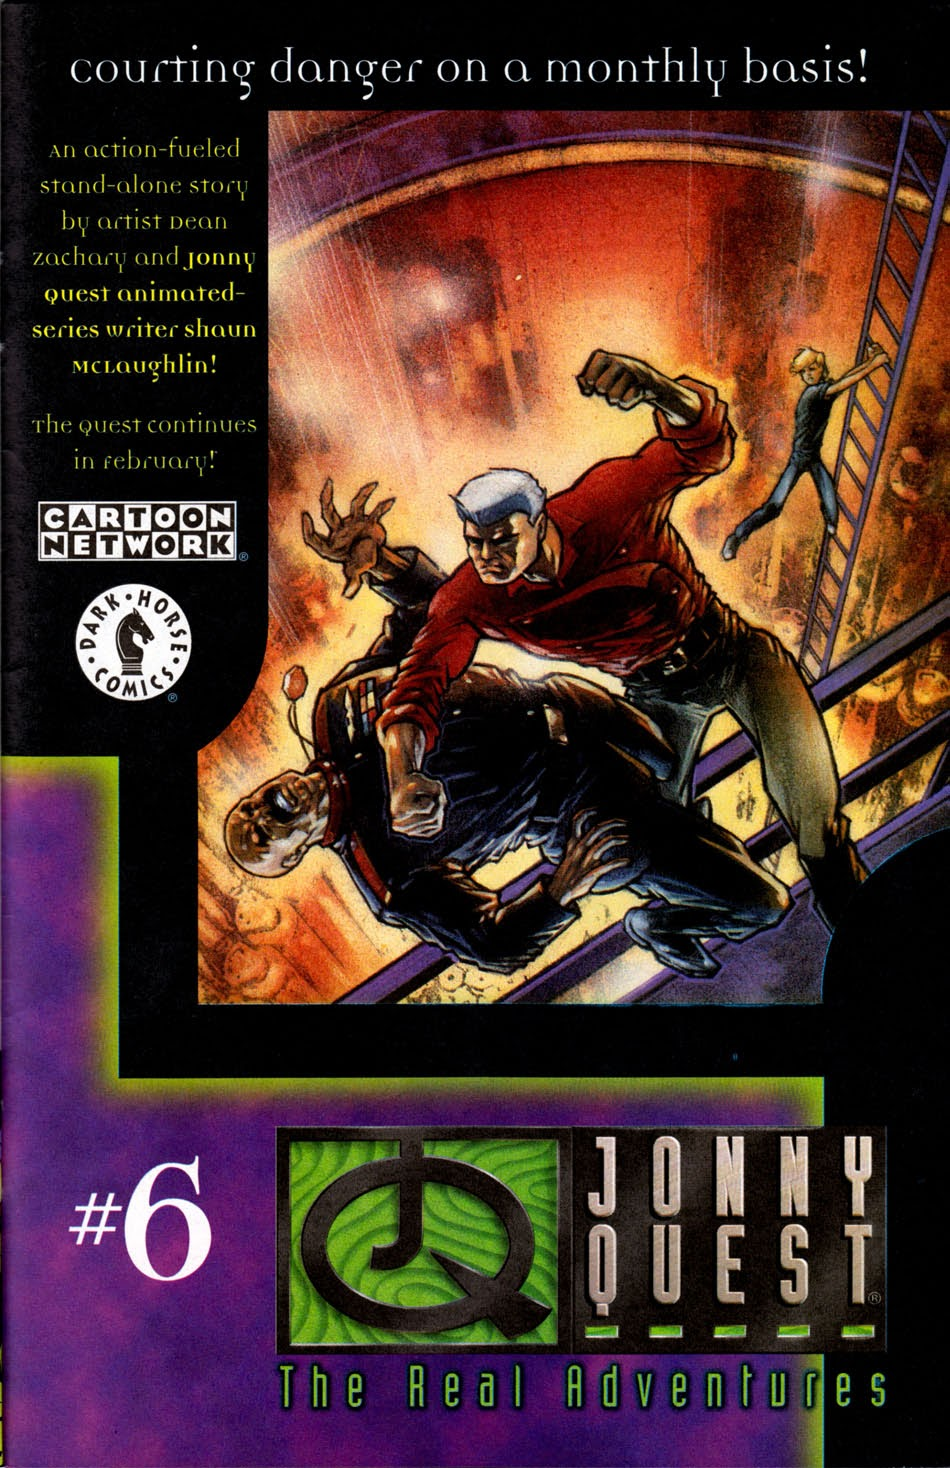 Read online The Real Adventures of Jonny Quest comic -  Issue #5 - 31